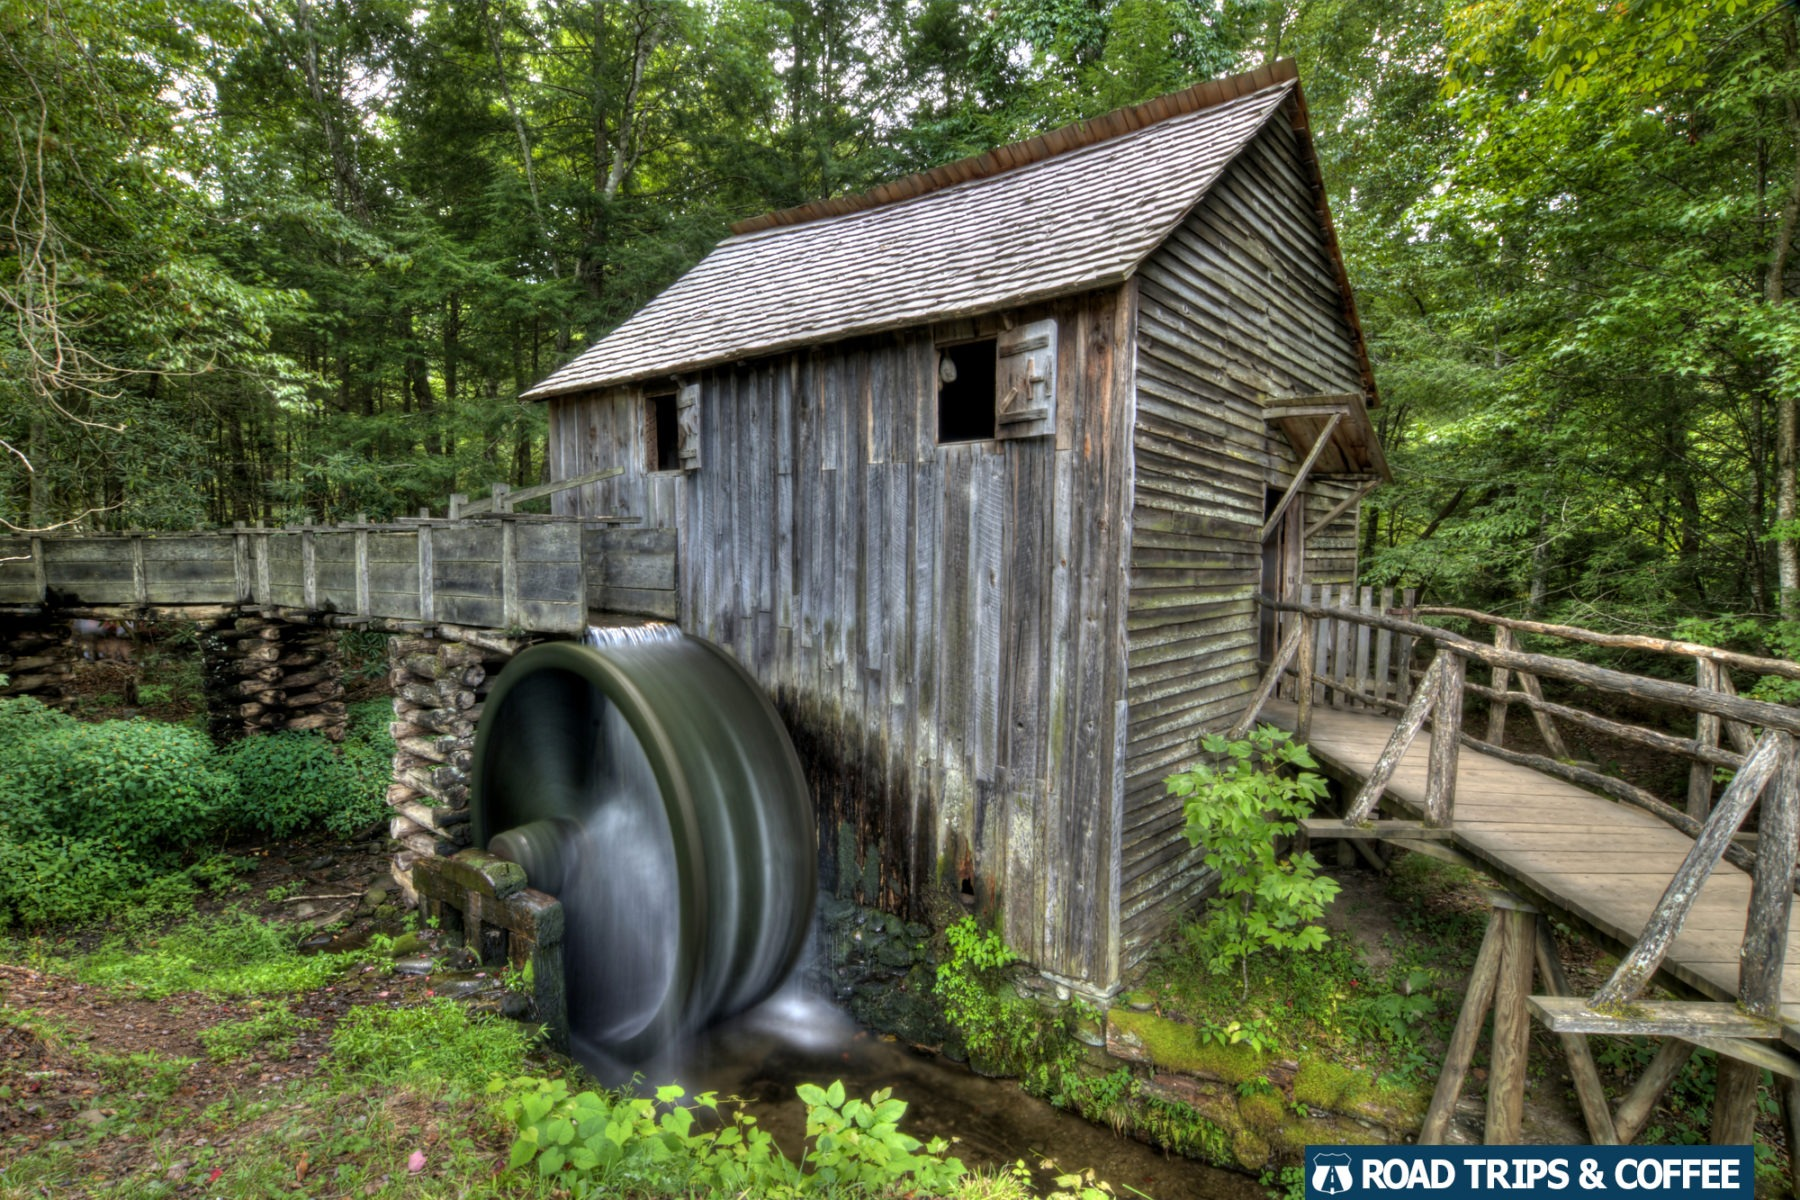 The spinning wheel of the Cable Mill in Cades Cove in the Great Smoky Mountains National Park